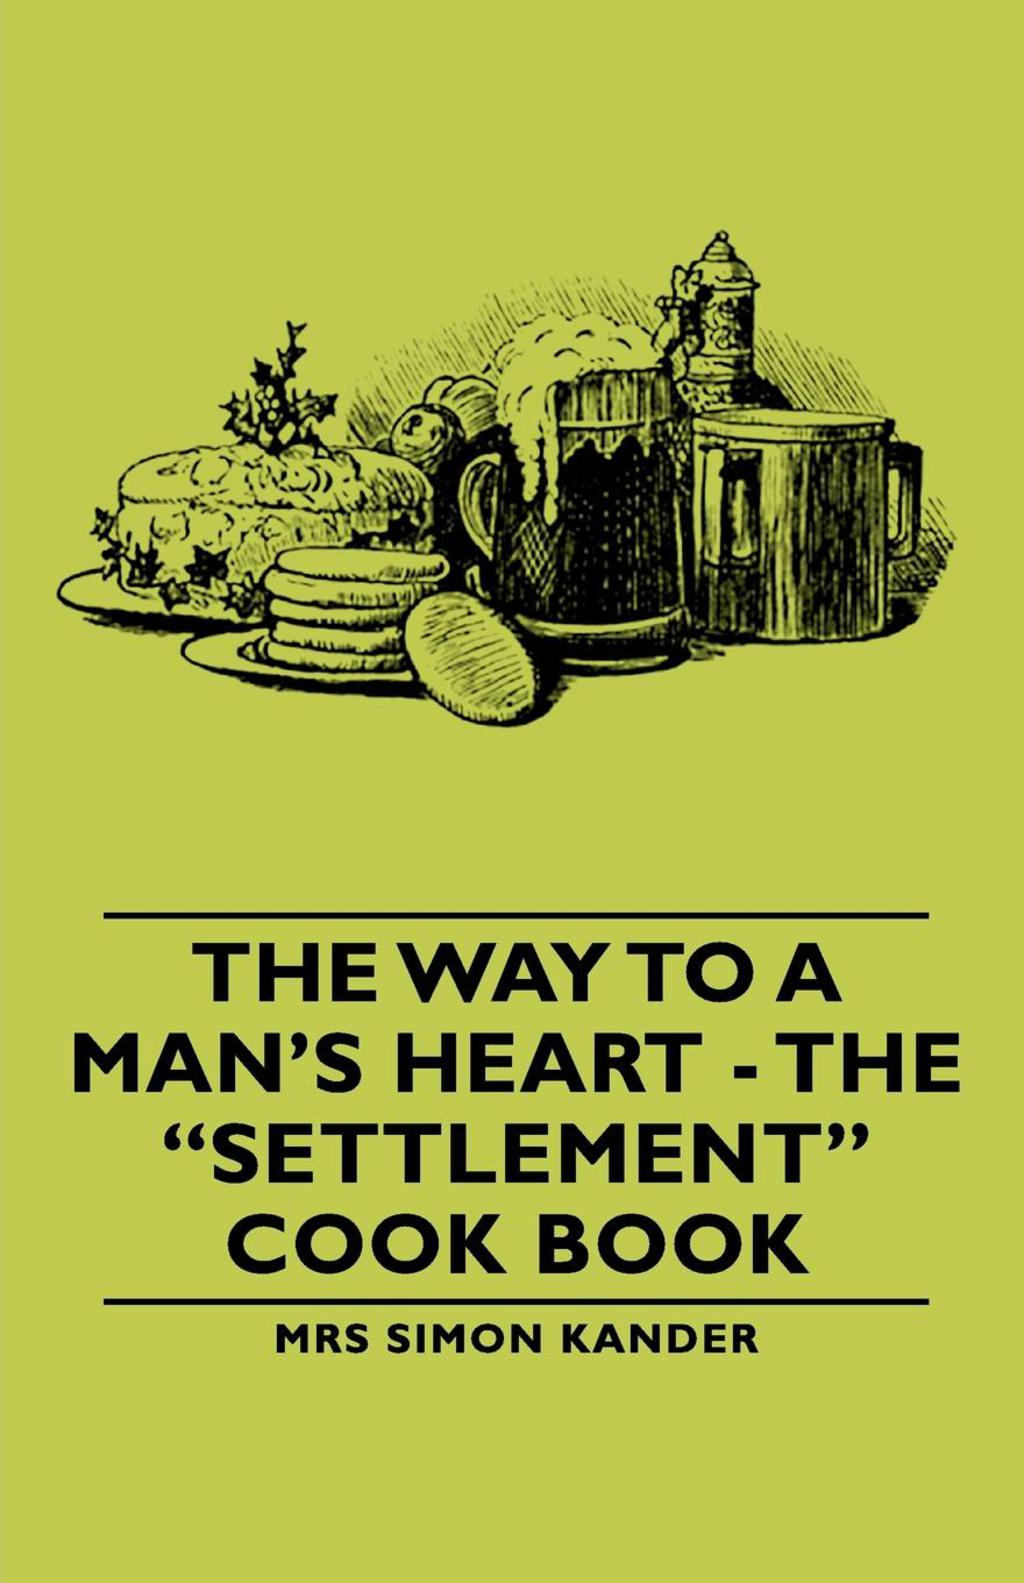 The Way To A Man's Heart - The Settlement Cook Book (ebook)